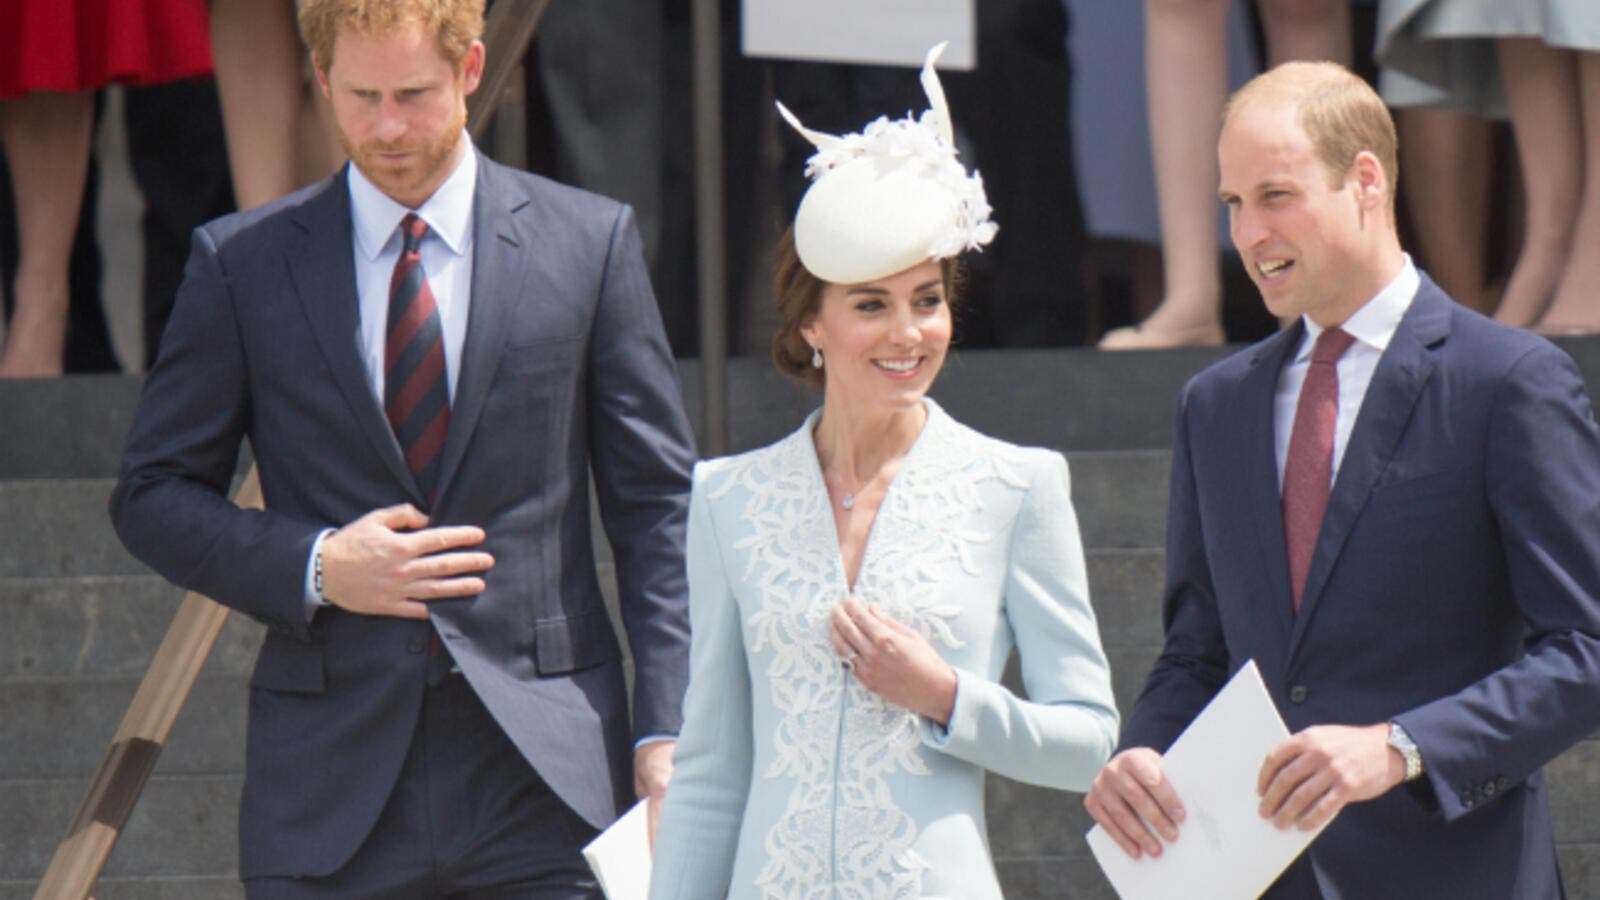 Prince Harry, Duchess Kate Middleton, and Prince William. (Mr Pics / Shutterstock.com)